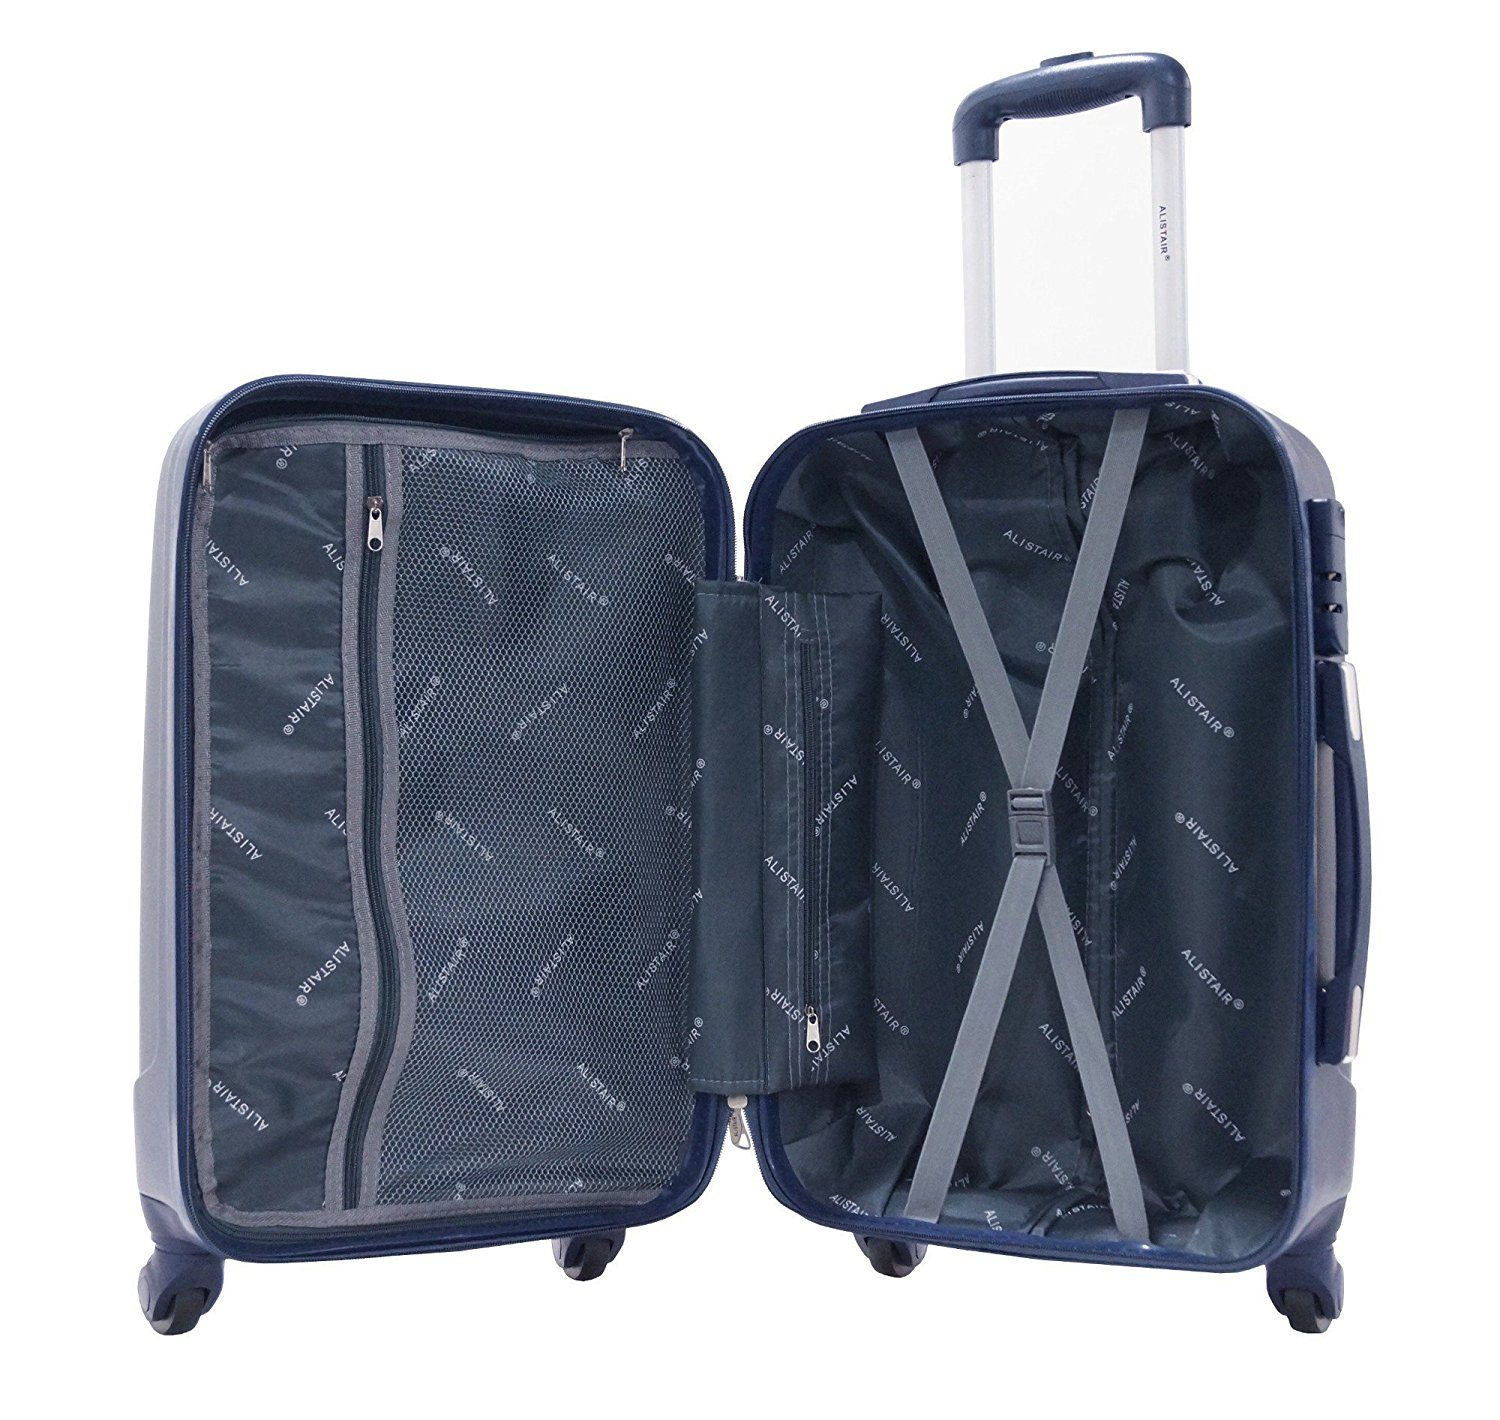 valise cabine rigide Alistair Airo